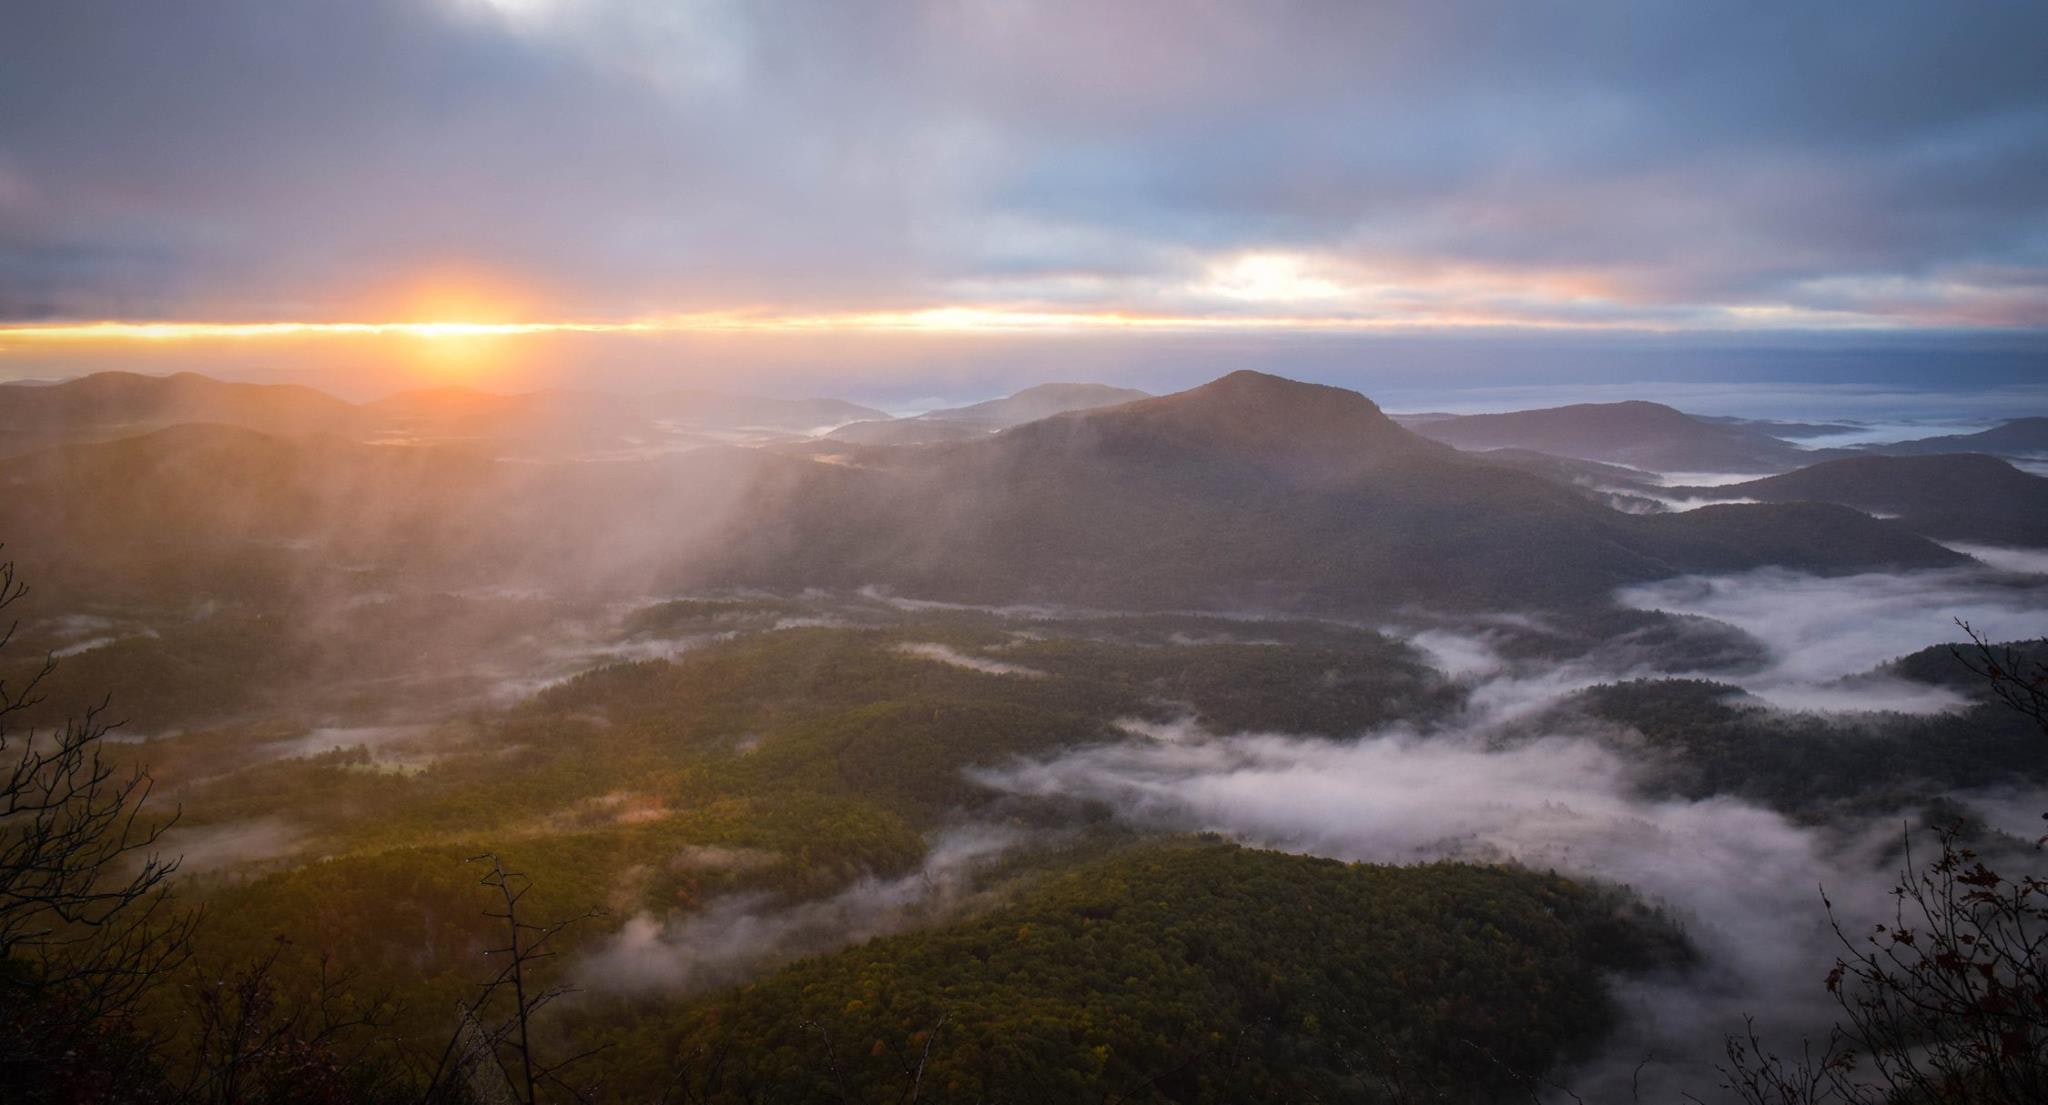 A high shot of mist over wooded mountain slopes during sunset